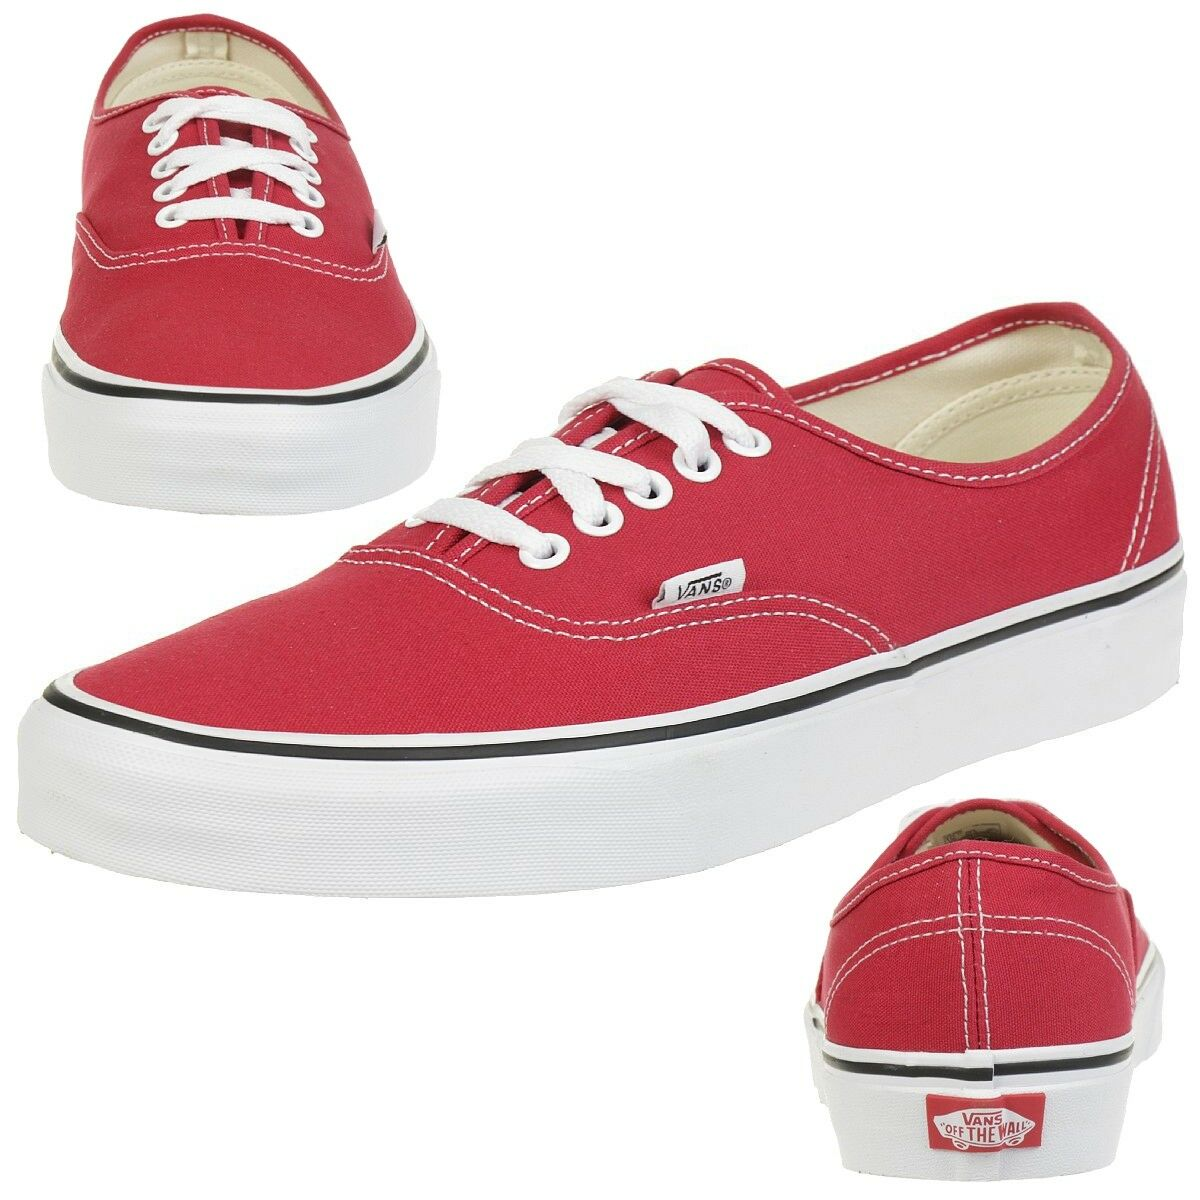 Vans Unisex-Erwachsene Authentic Sneaker, Rot (Crimson/True White)